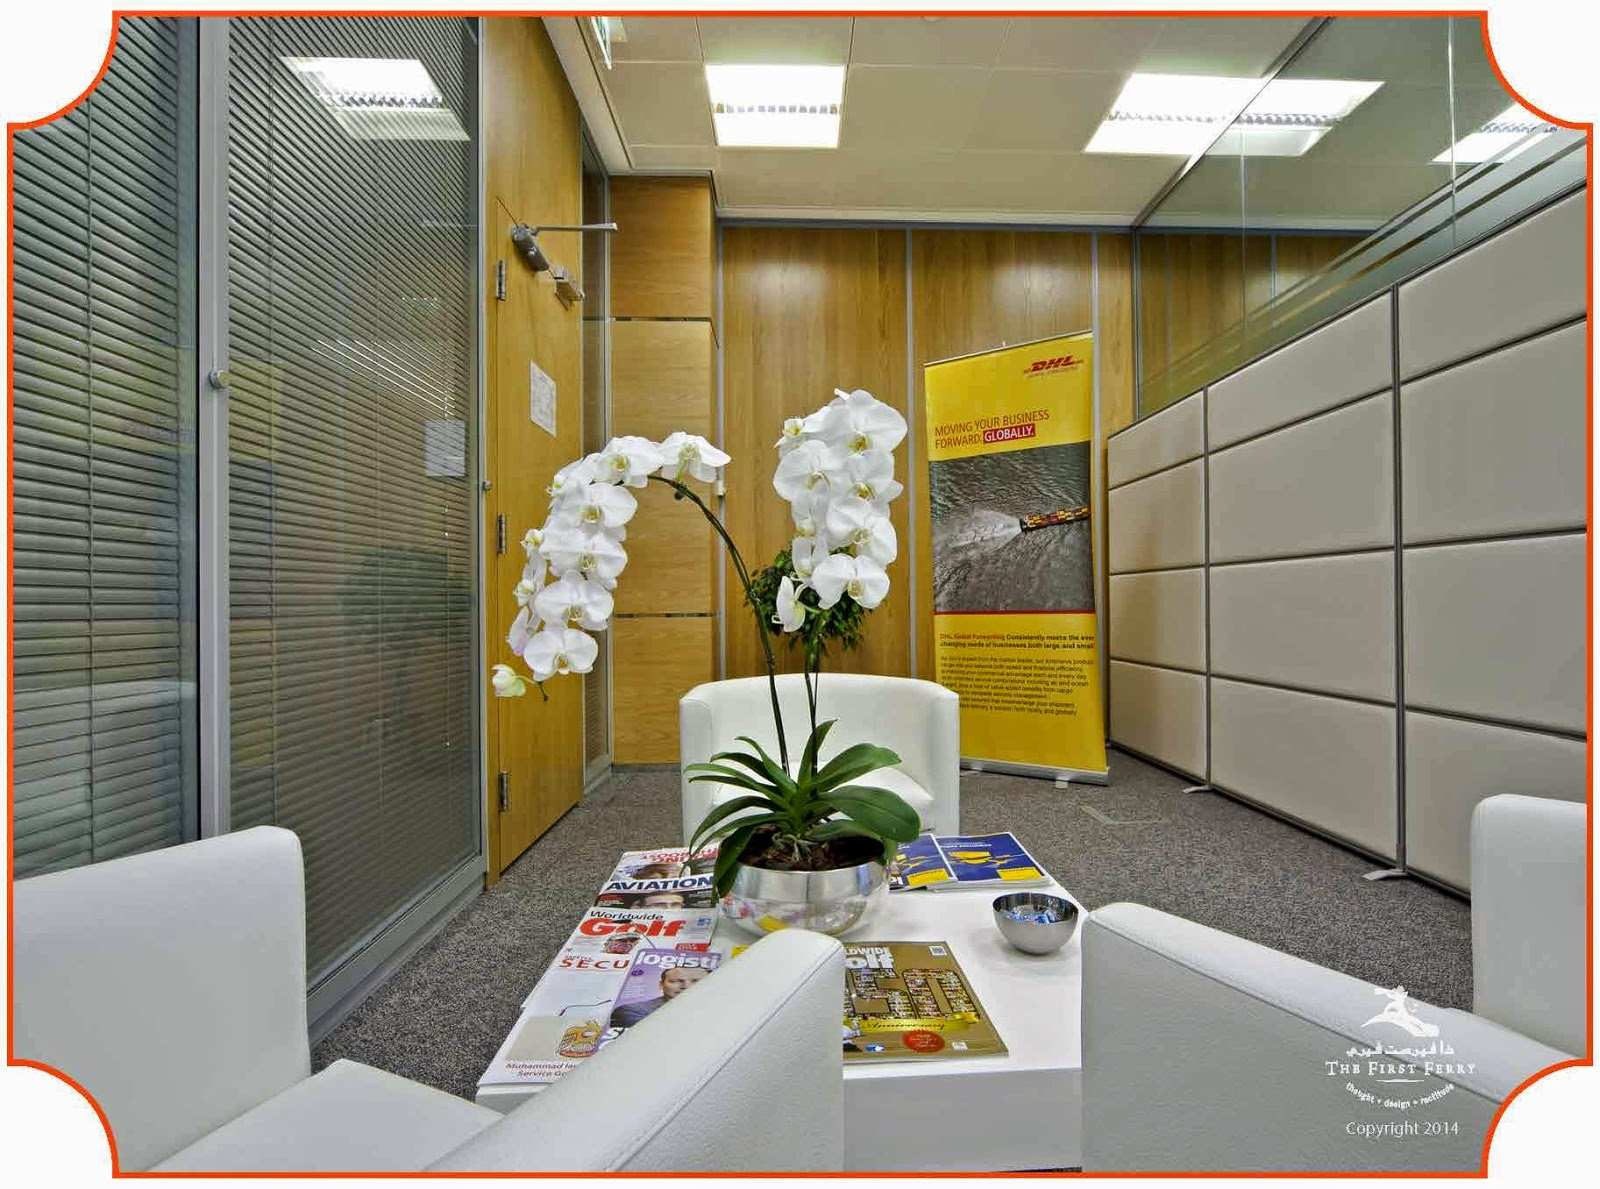 offices of DHL, the global giant in DWC, Dubai